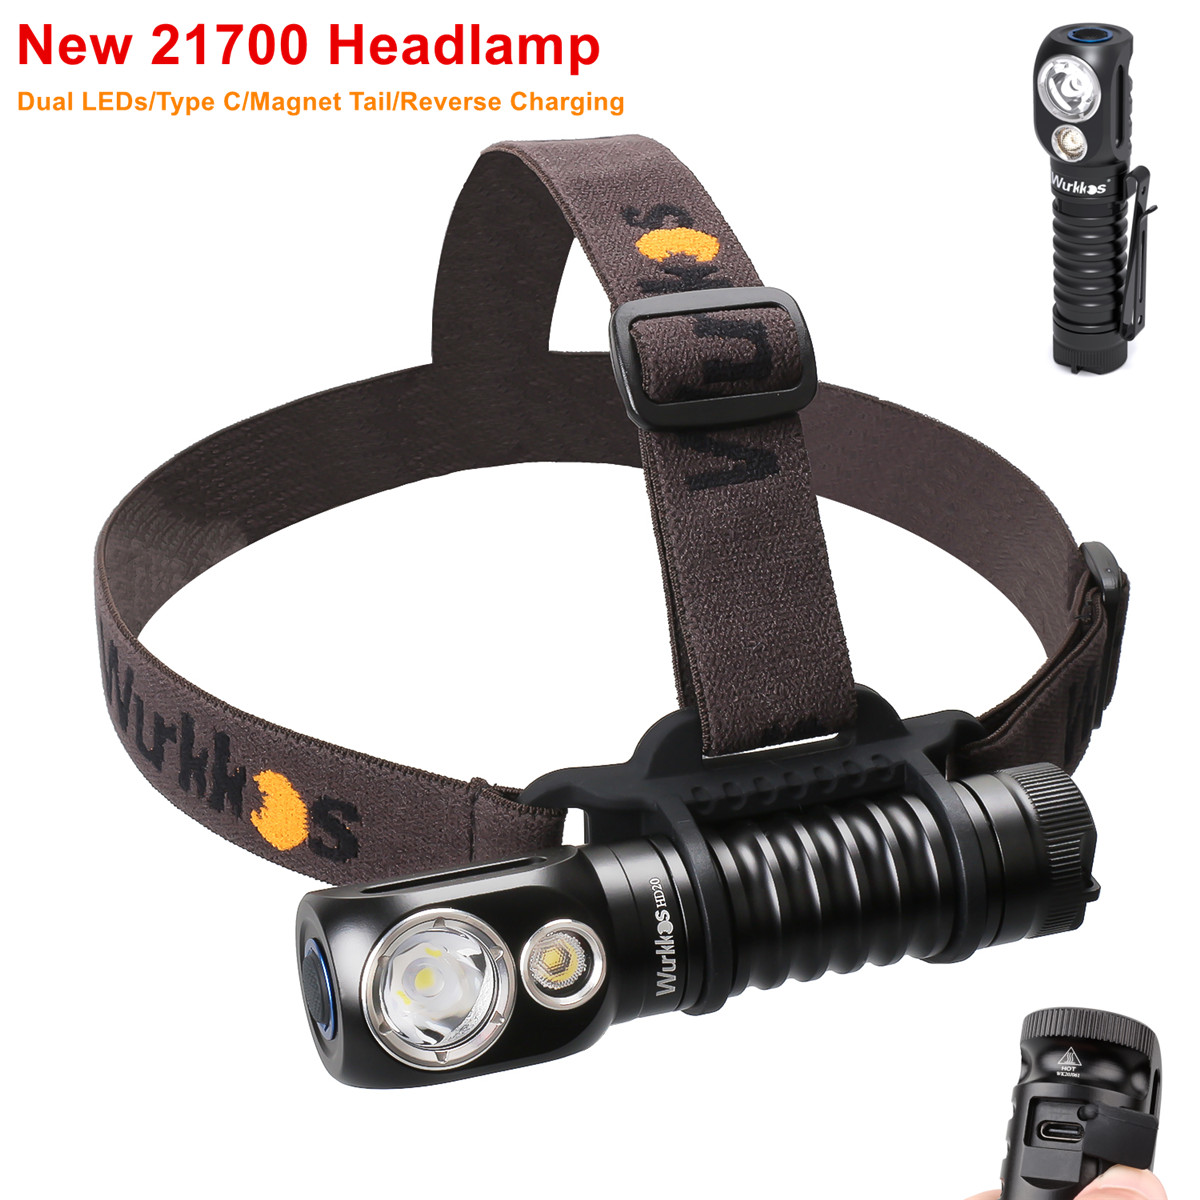 Permalink to Wurkkos HD20 Rechargeable Headlamp 21700 Flashlight 2000lm Dual LED LH351D and XPL with Type C Reverse Charge Magnetic Tail